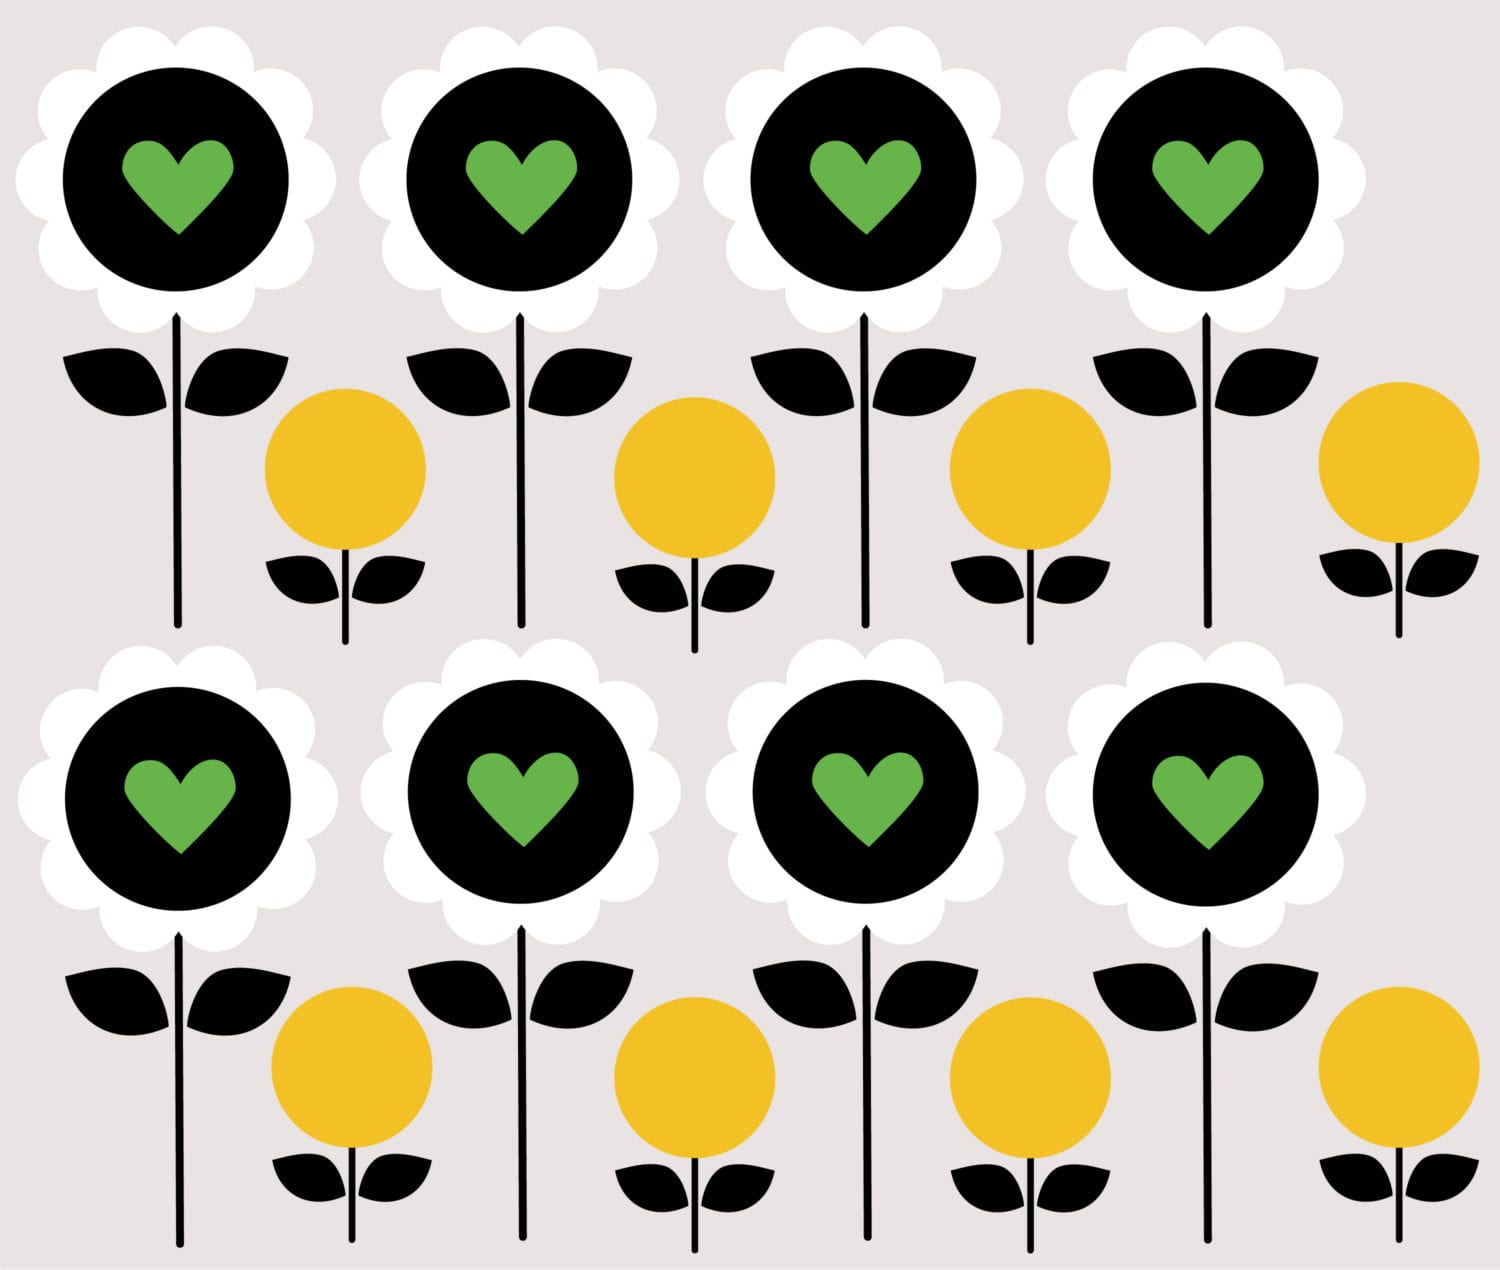 Mishka-Black-Daisy-Yellow-Hearts-Repeat-pattern-High-Res